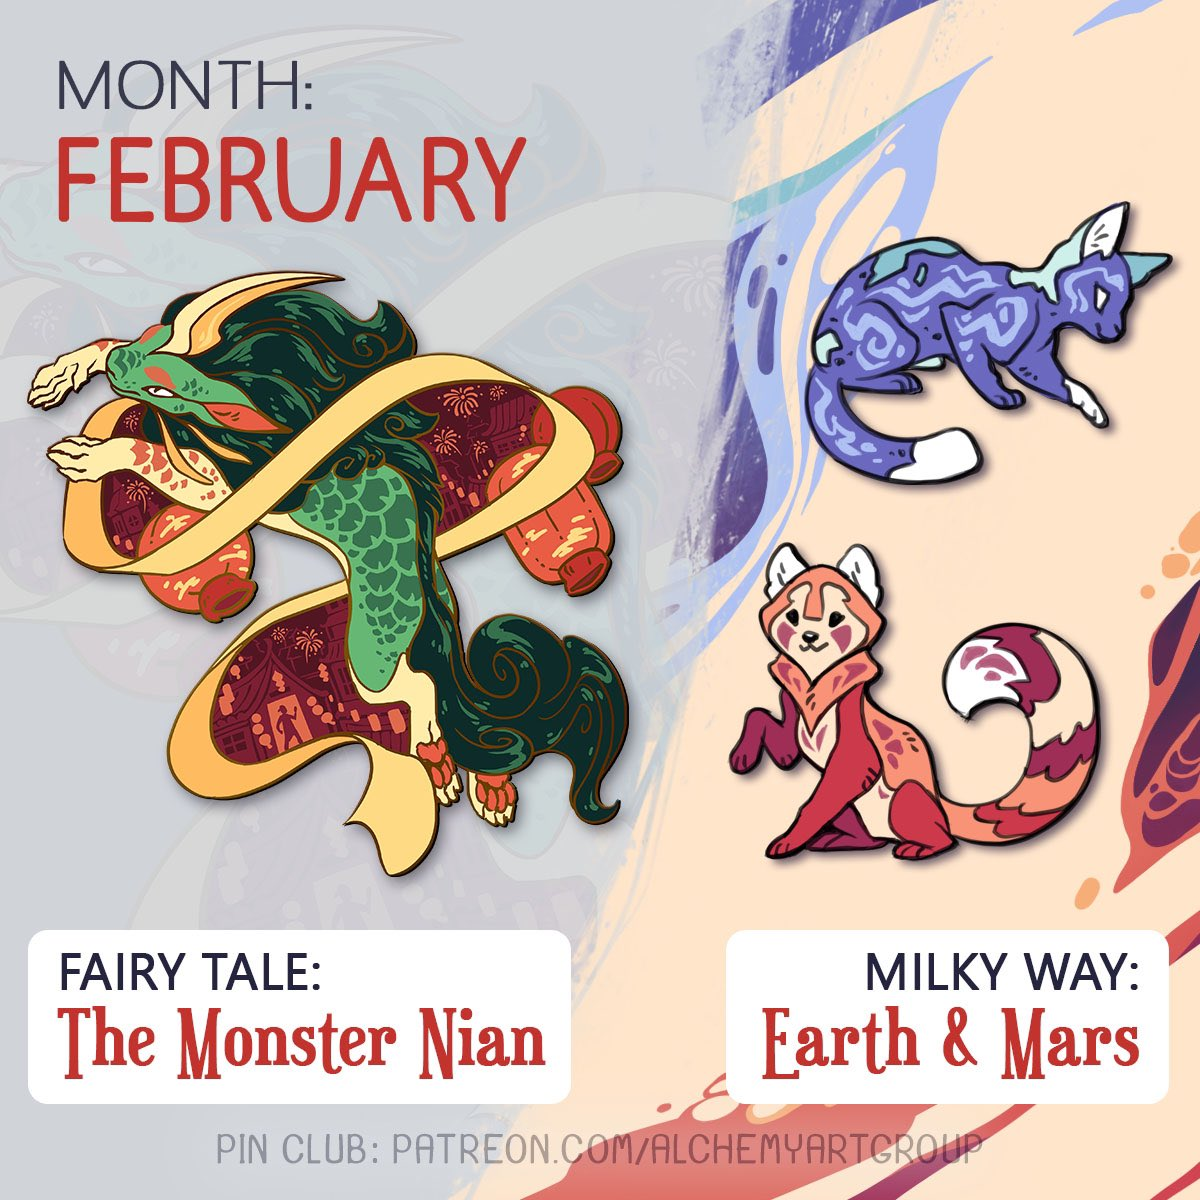 Today is the last day to pick up our February pin club additions! Celebrating #LunarNewYear we have the monster Nian, and we have two Milky Way additions (that you can preorder on the store)! #enamelpin